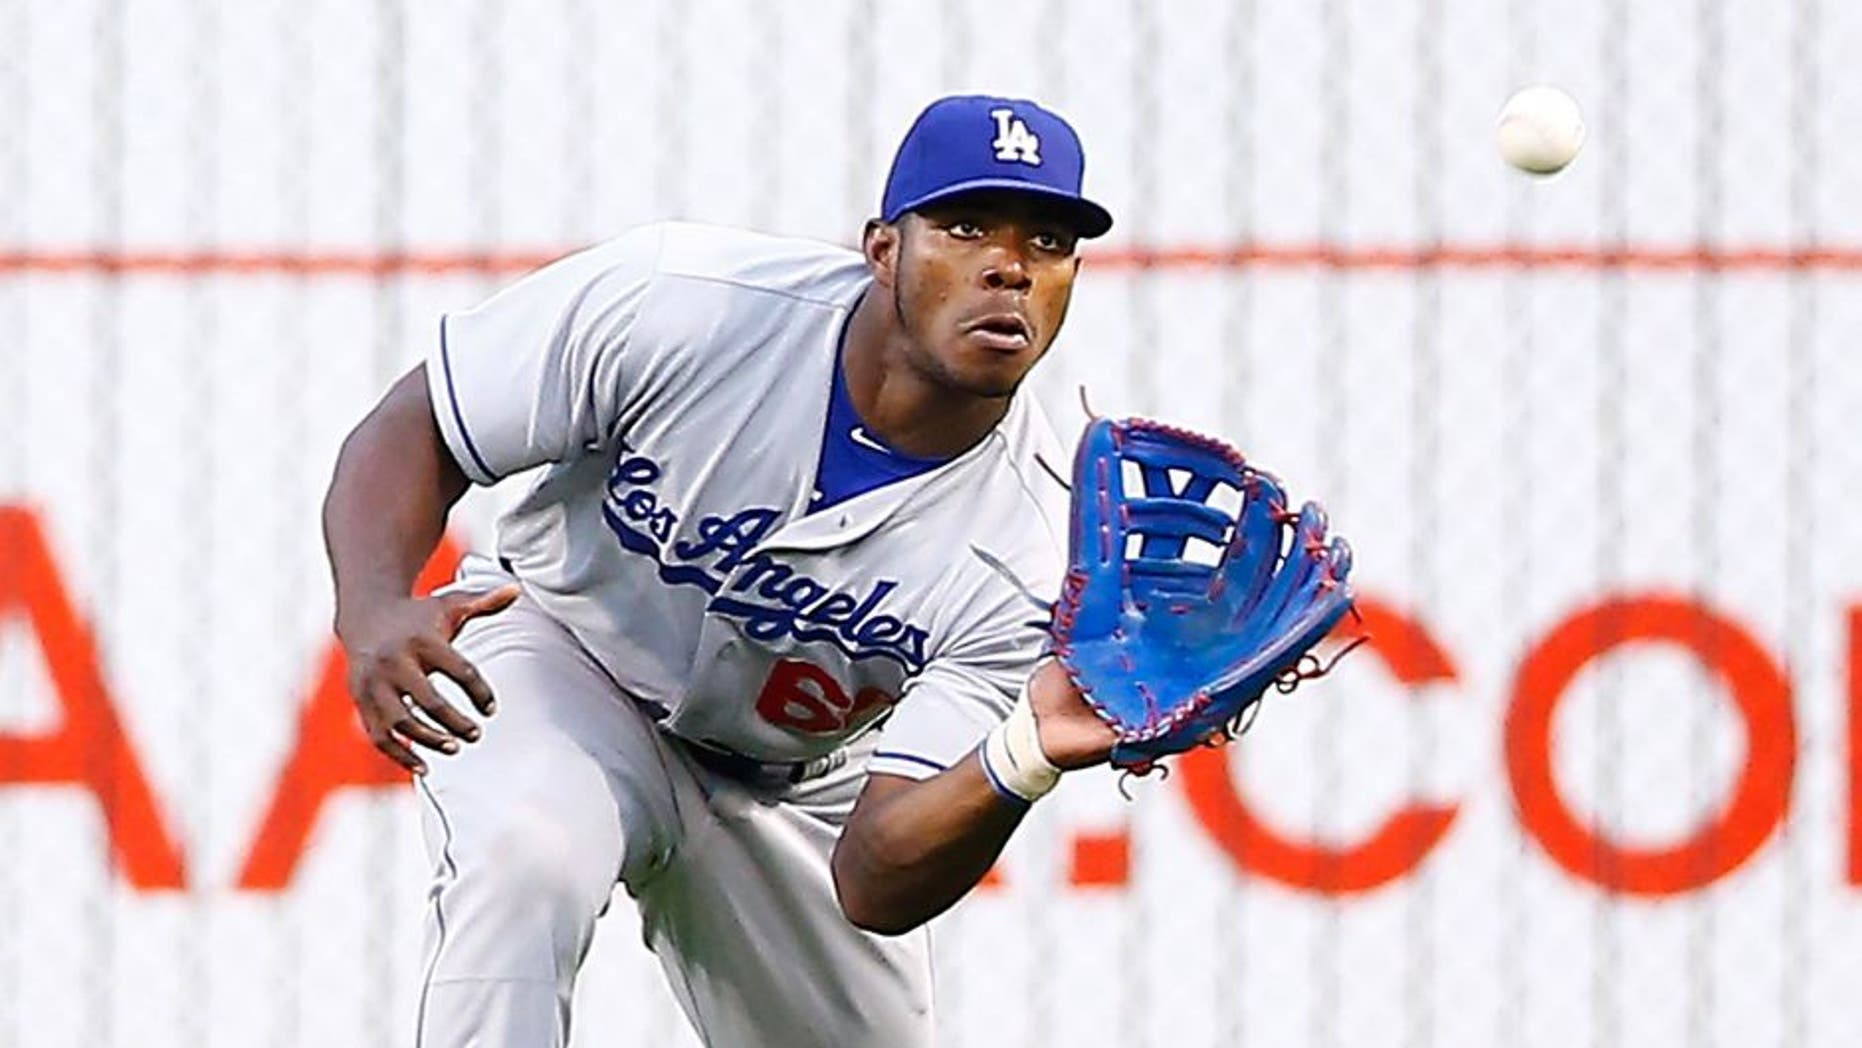 PITTSBURGH, PA - AUGUST 08: Yasiel Puig #66 of the Los Angles Dodgers catches a fly ball in right field against the Pittsburgh Pirates during the game at PNC Park on August 8, 2015 in Pittsburgh, Pennsylvania. (Photo by Jared Wickerham/Getty Images)